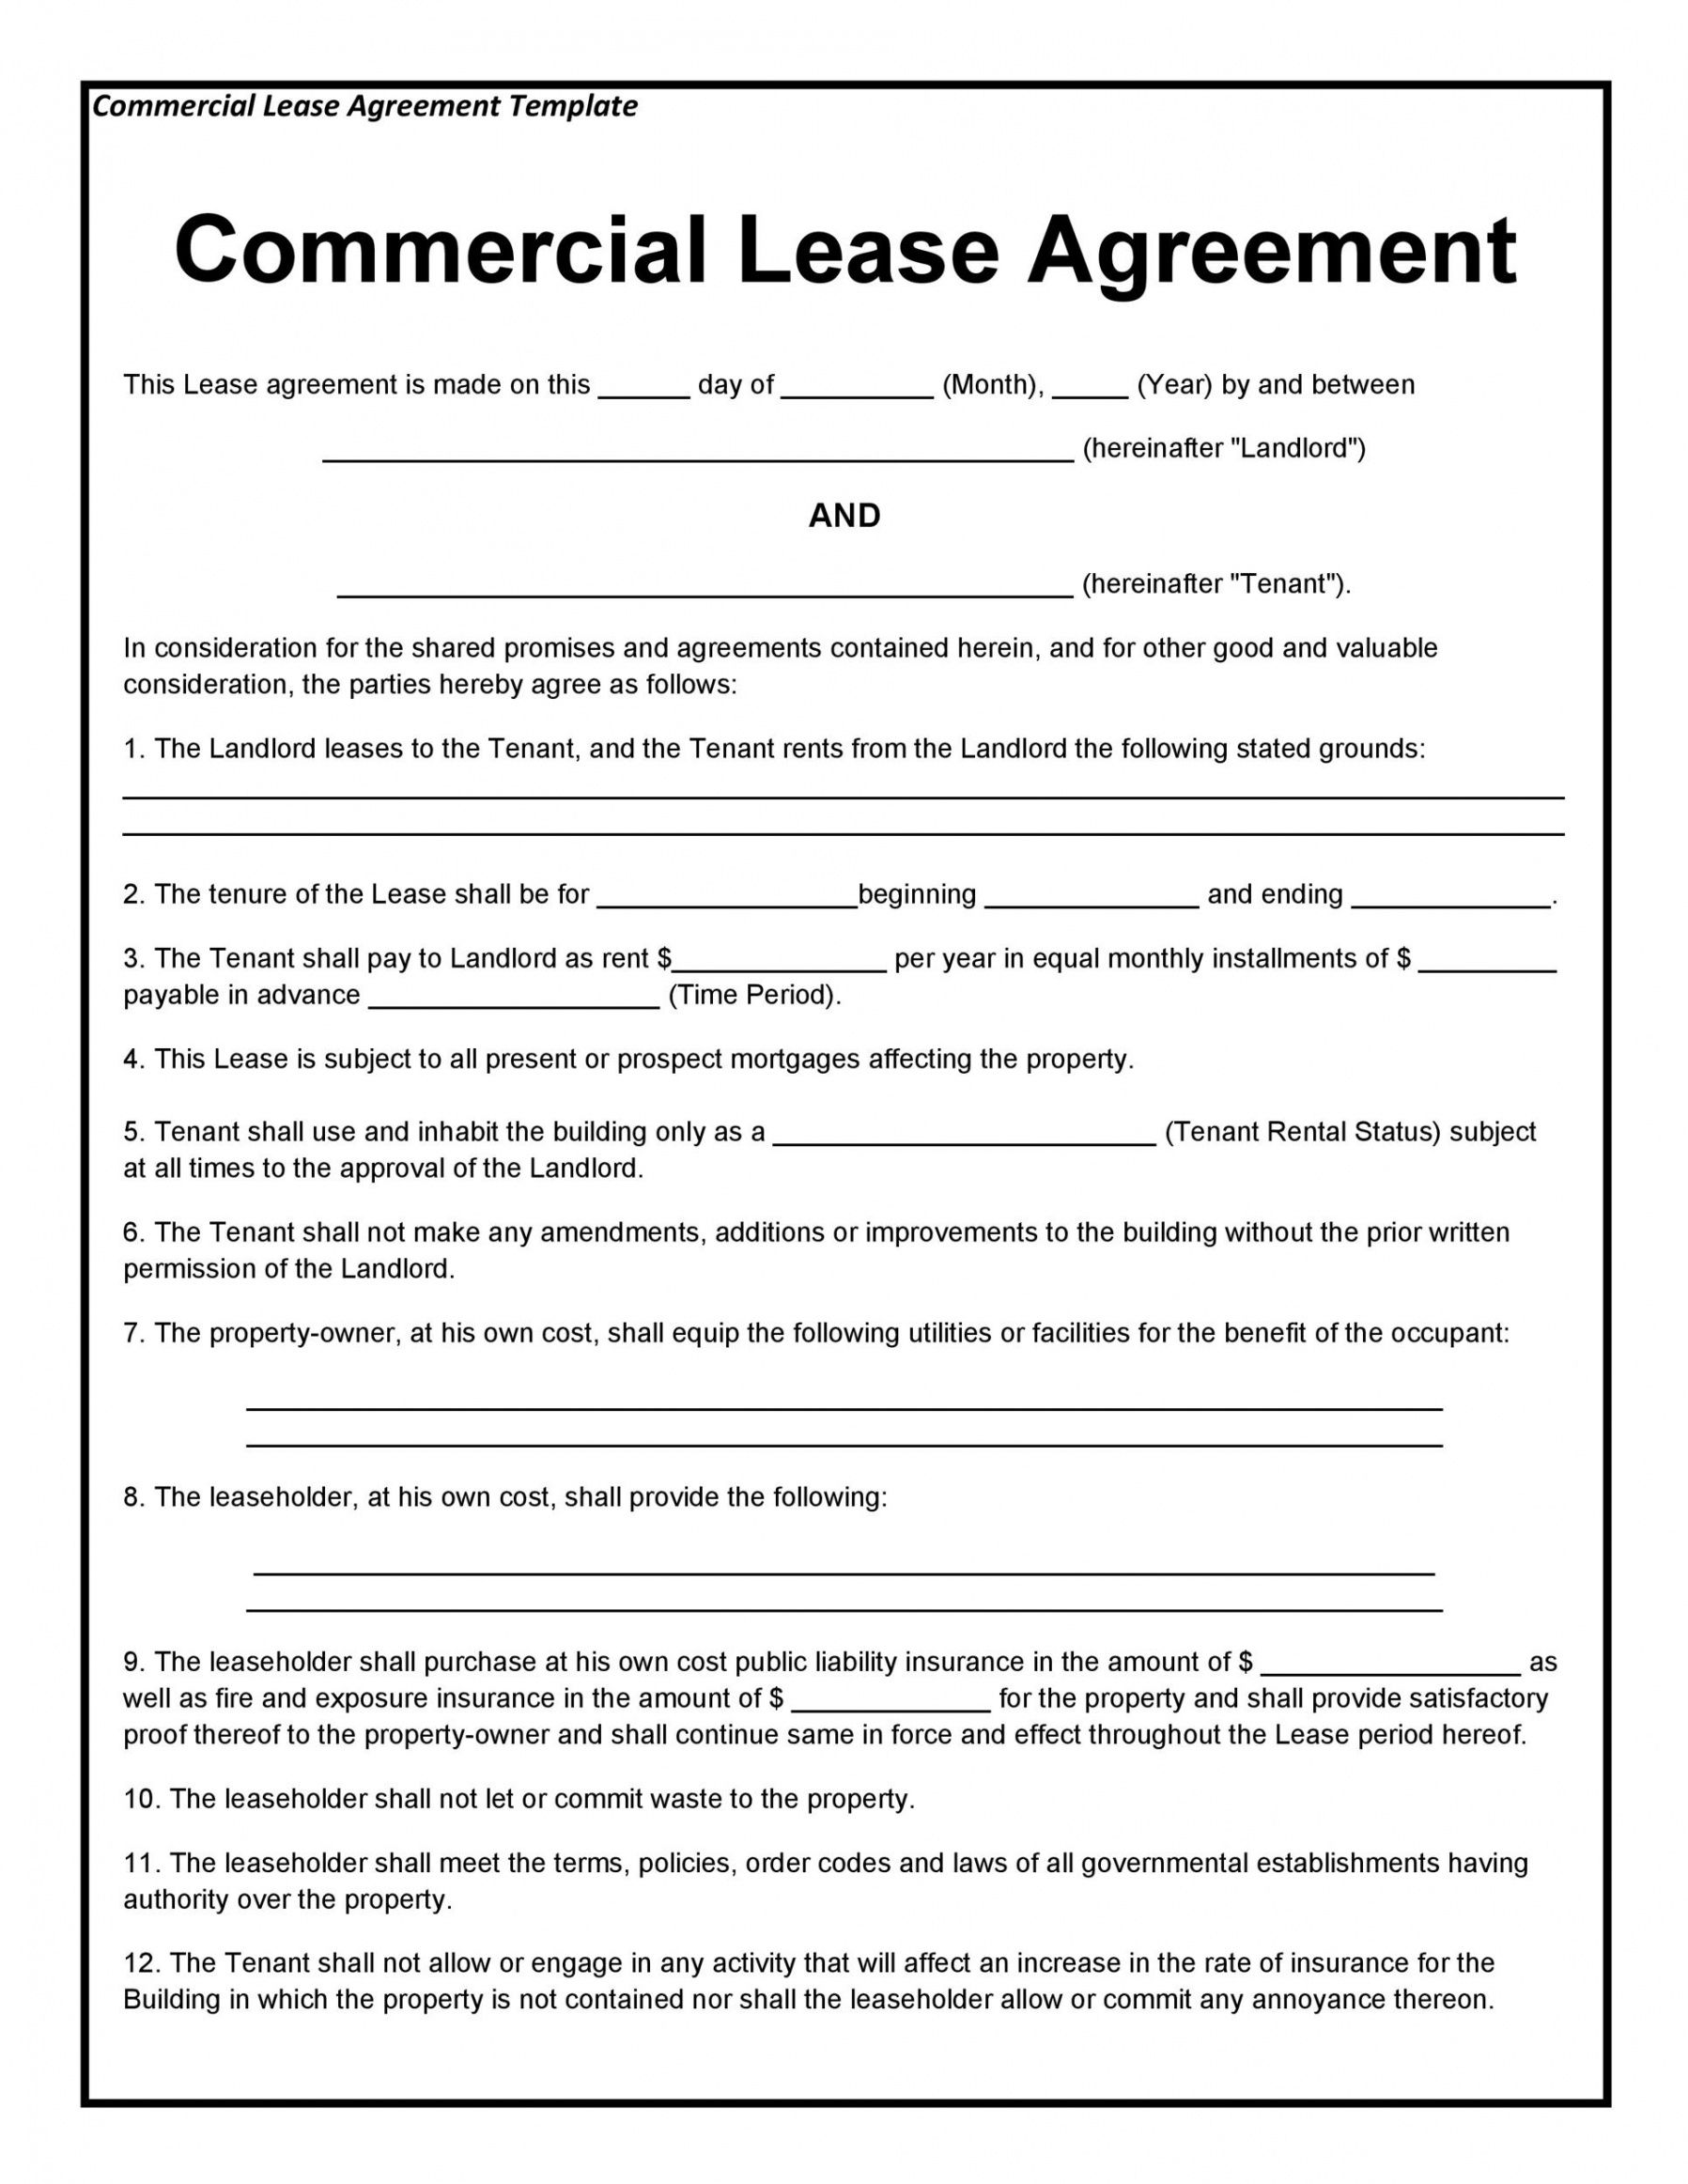 26 Free Commercial Lease Agreement Templates Templatelab Commercial Lease Contract Templ In 2021 Lease Agreement Rental Agreement Templates Commercial Lease Agreement Free commercial lease agreement template